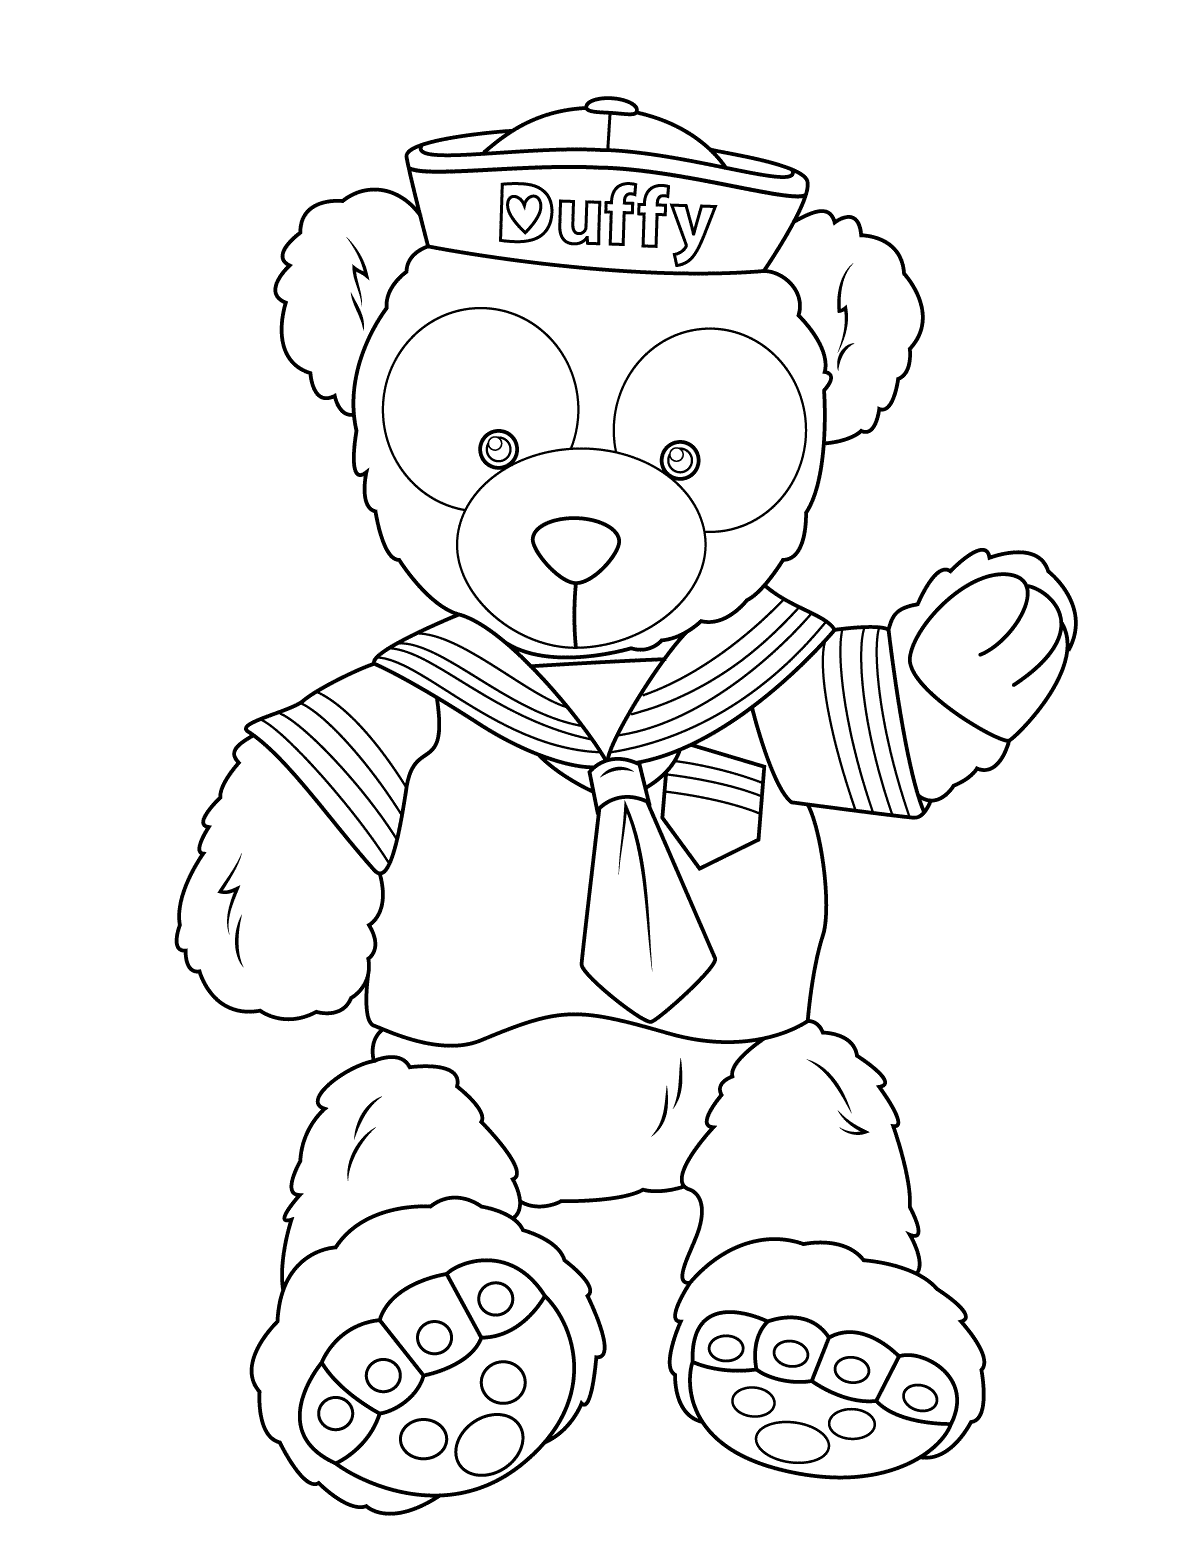 Duffy the Disney Bear Coloring Page